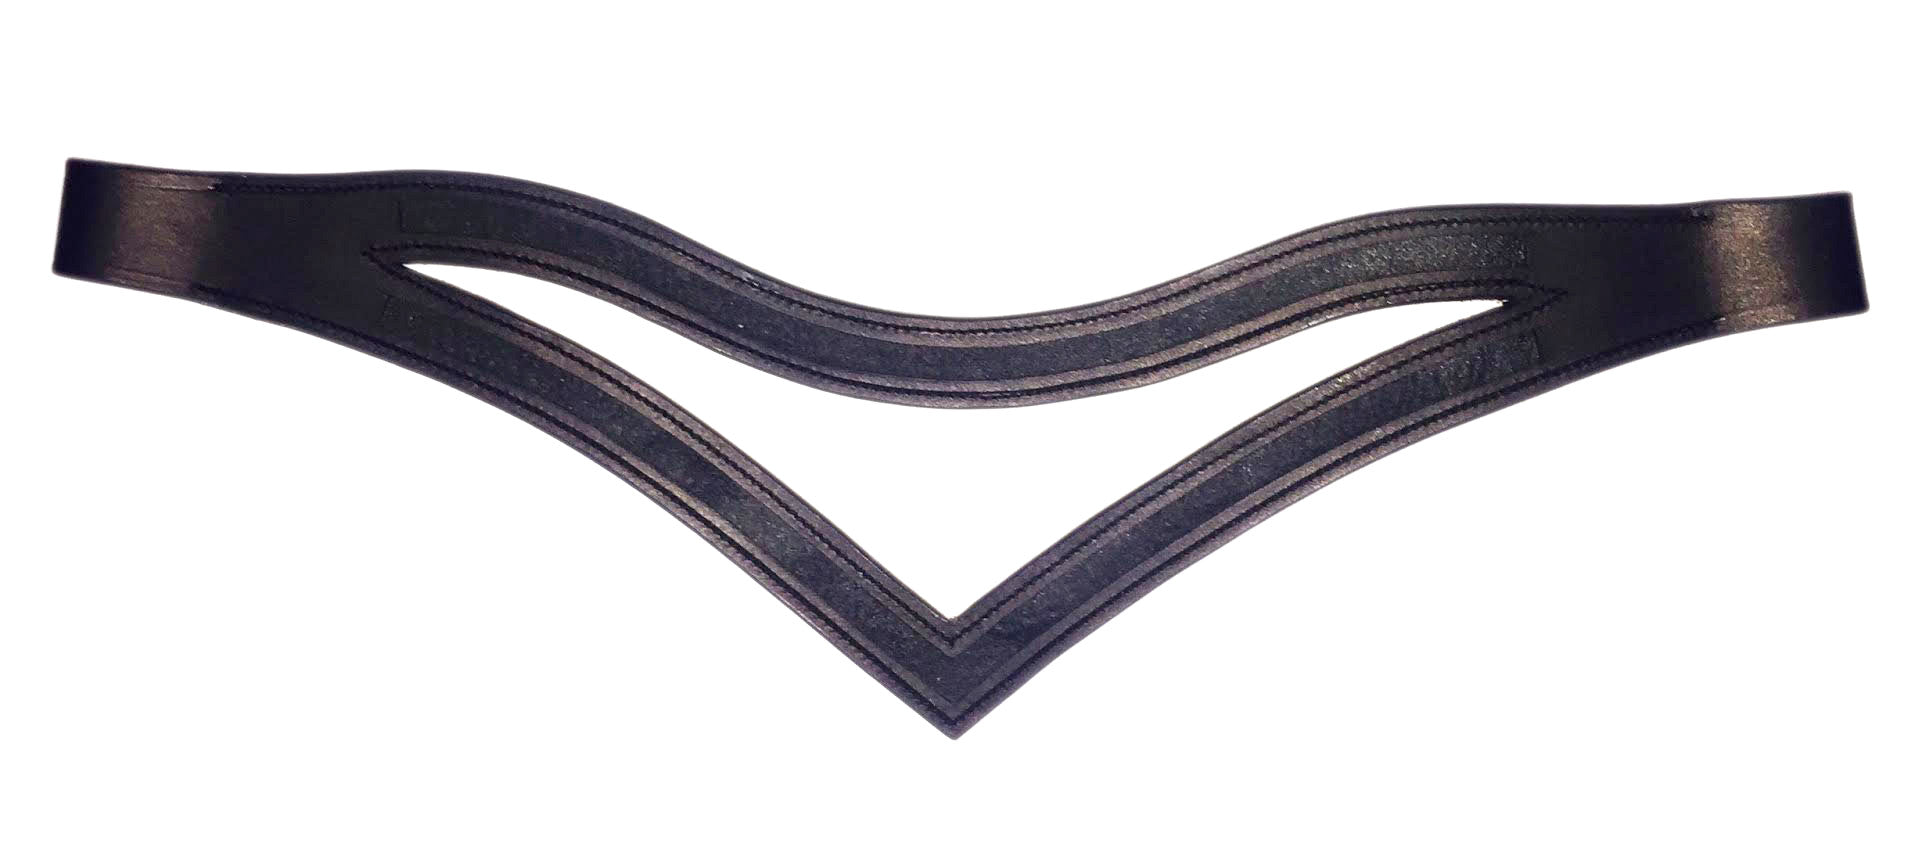 Double Empty channel browbands - U and V / Padded / Unpadded